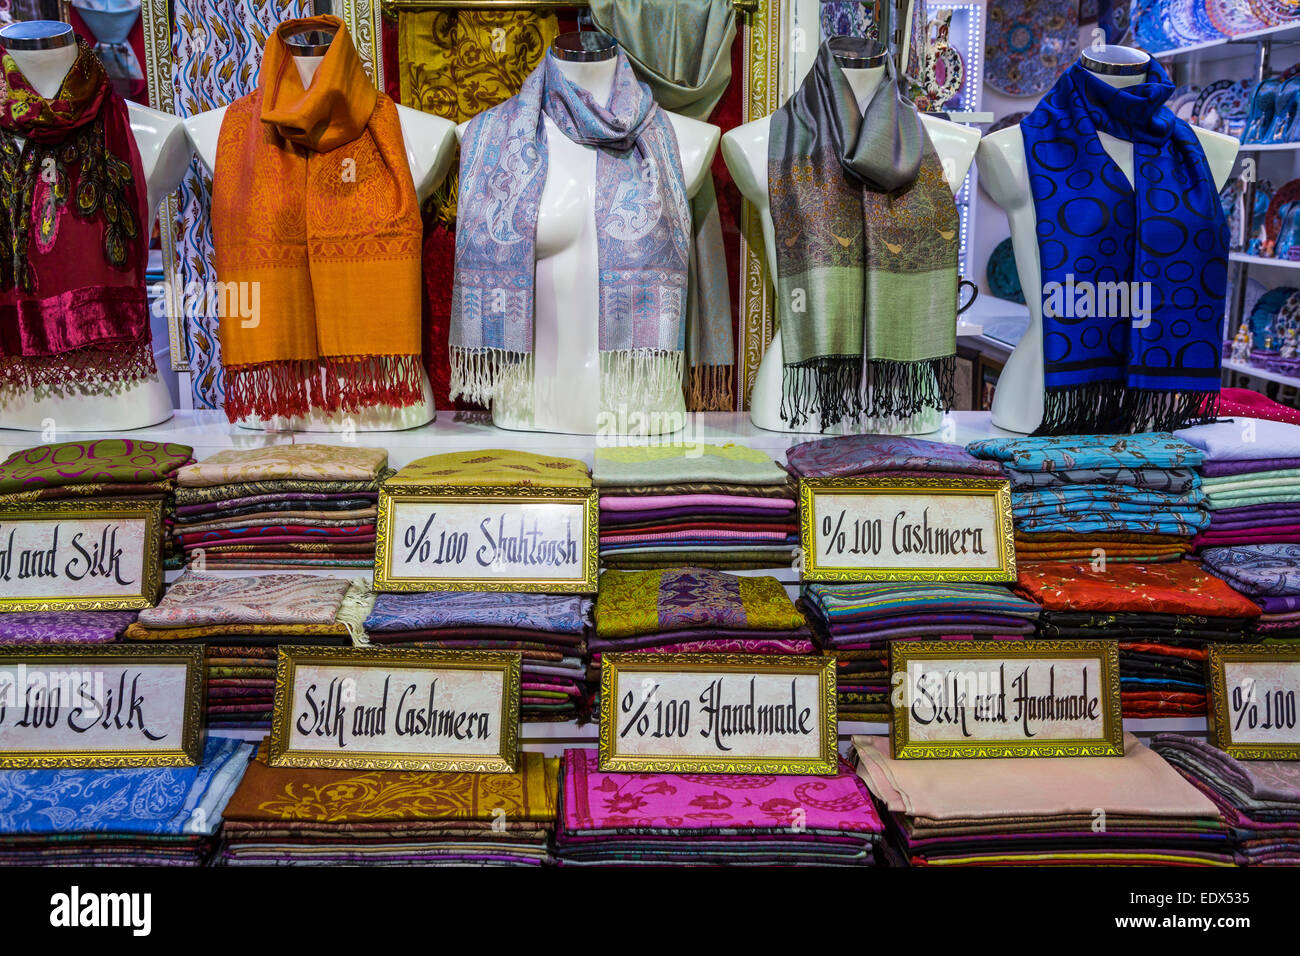 A scarf shop in the Grand Bazaar, Sultanahmet, Istanbul, Turkey ...